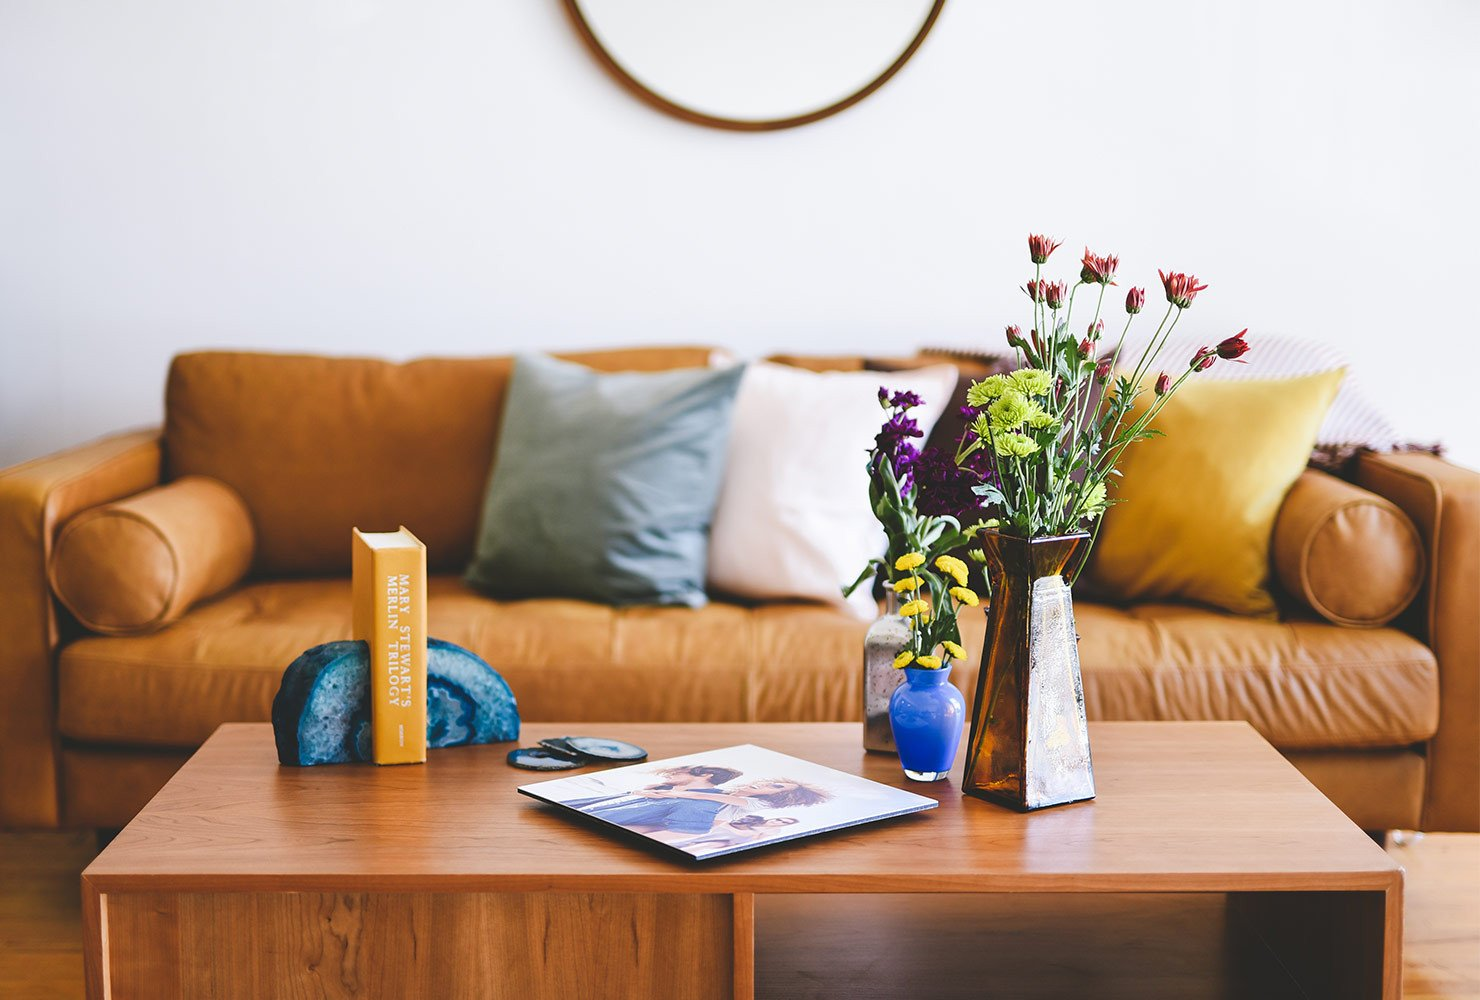 Living Room Center Table Decor 15 Tips for A Unique Coffee Table Decor and S